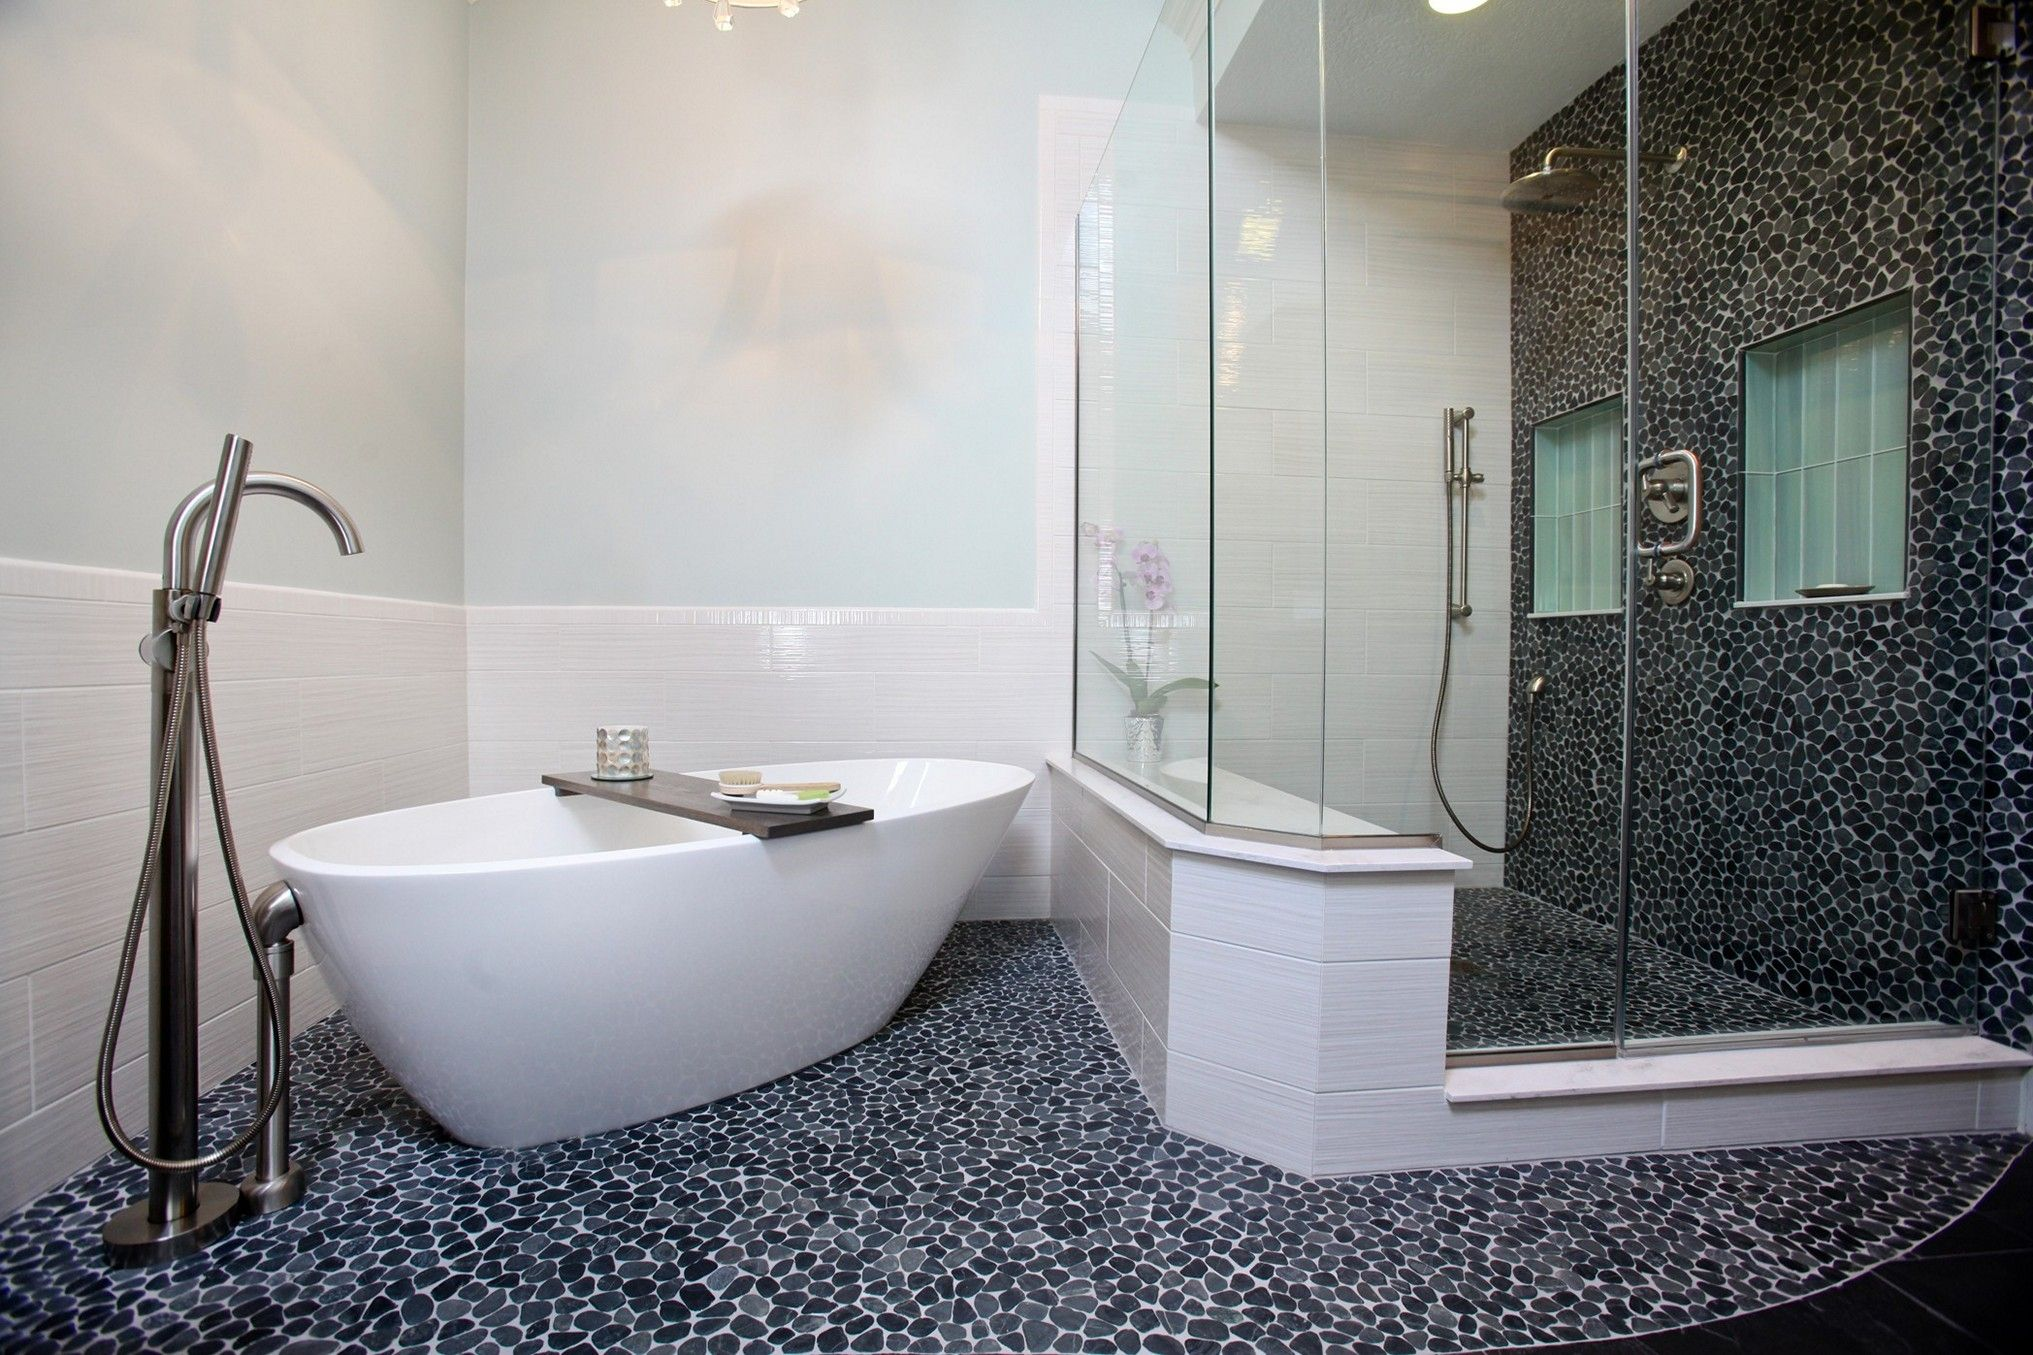 Bathroom Wall Tile Design Pictures | http://ultimaterpmod.us ...